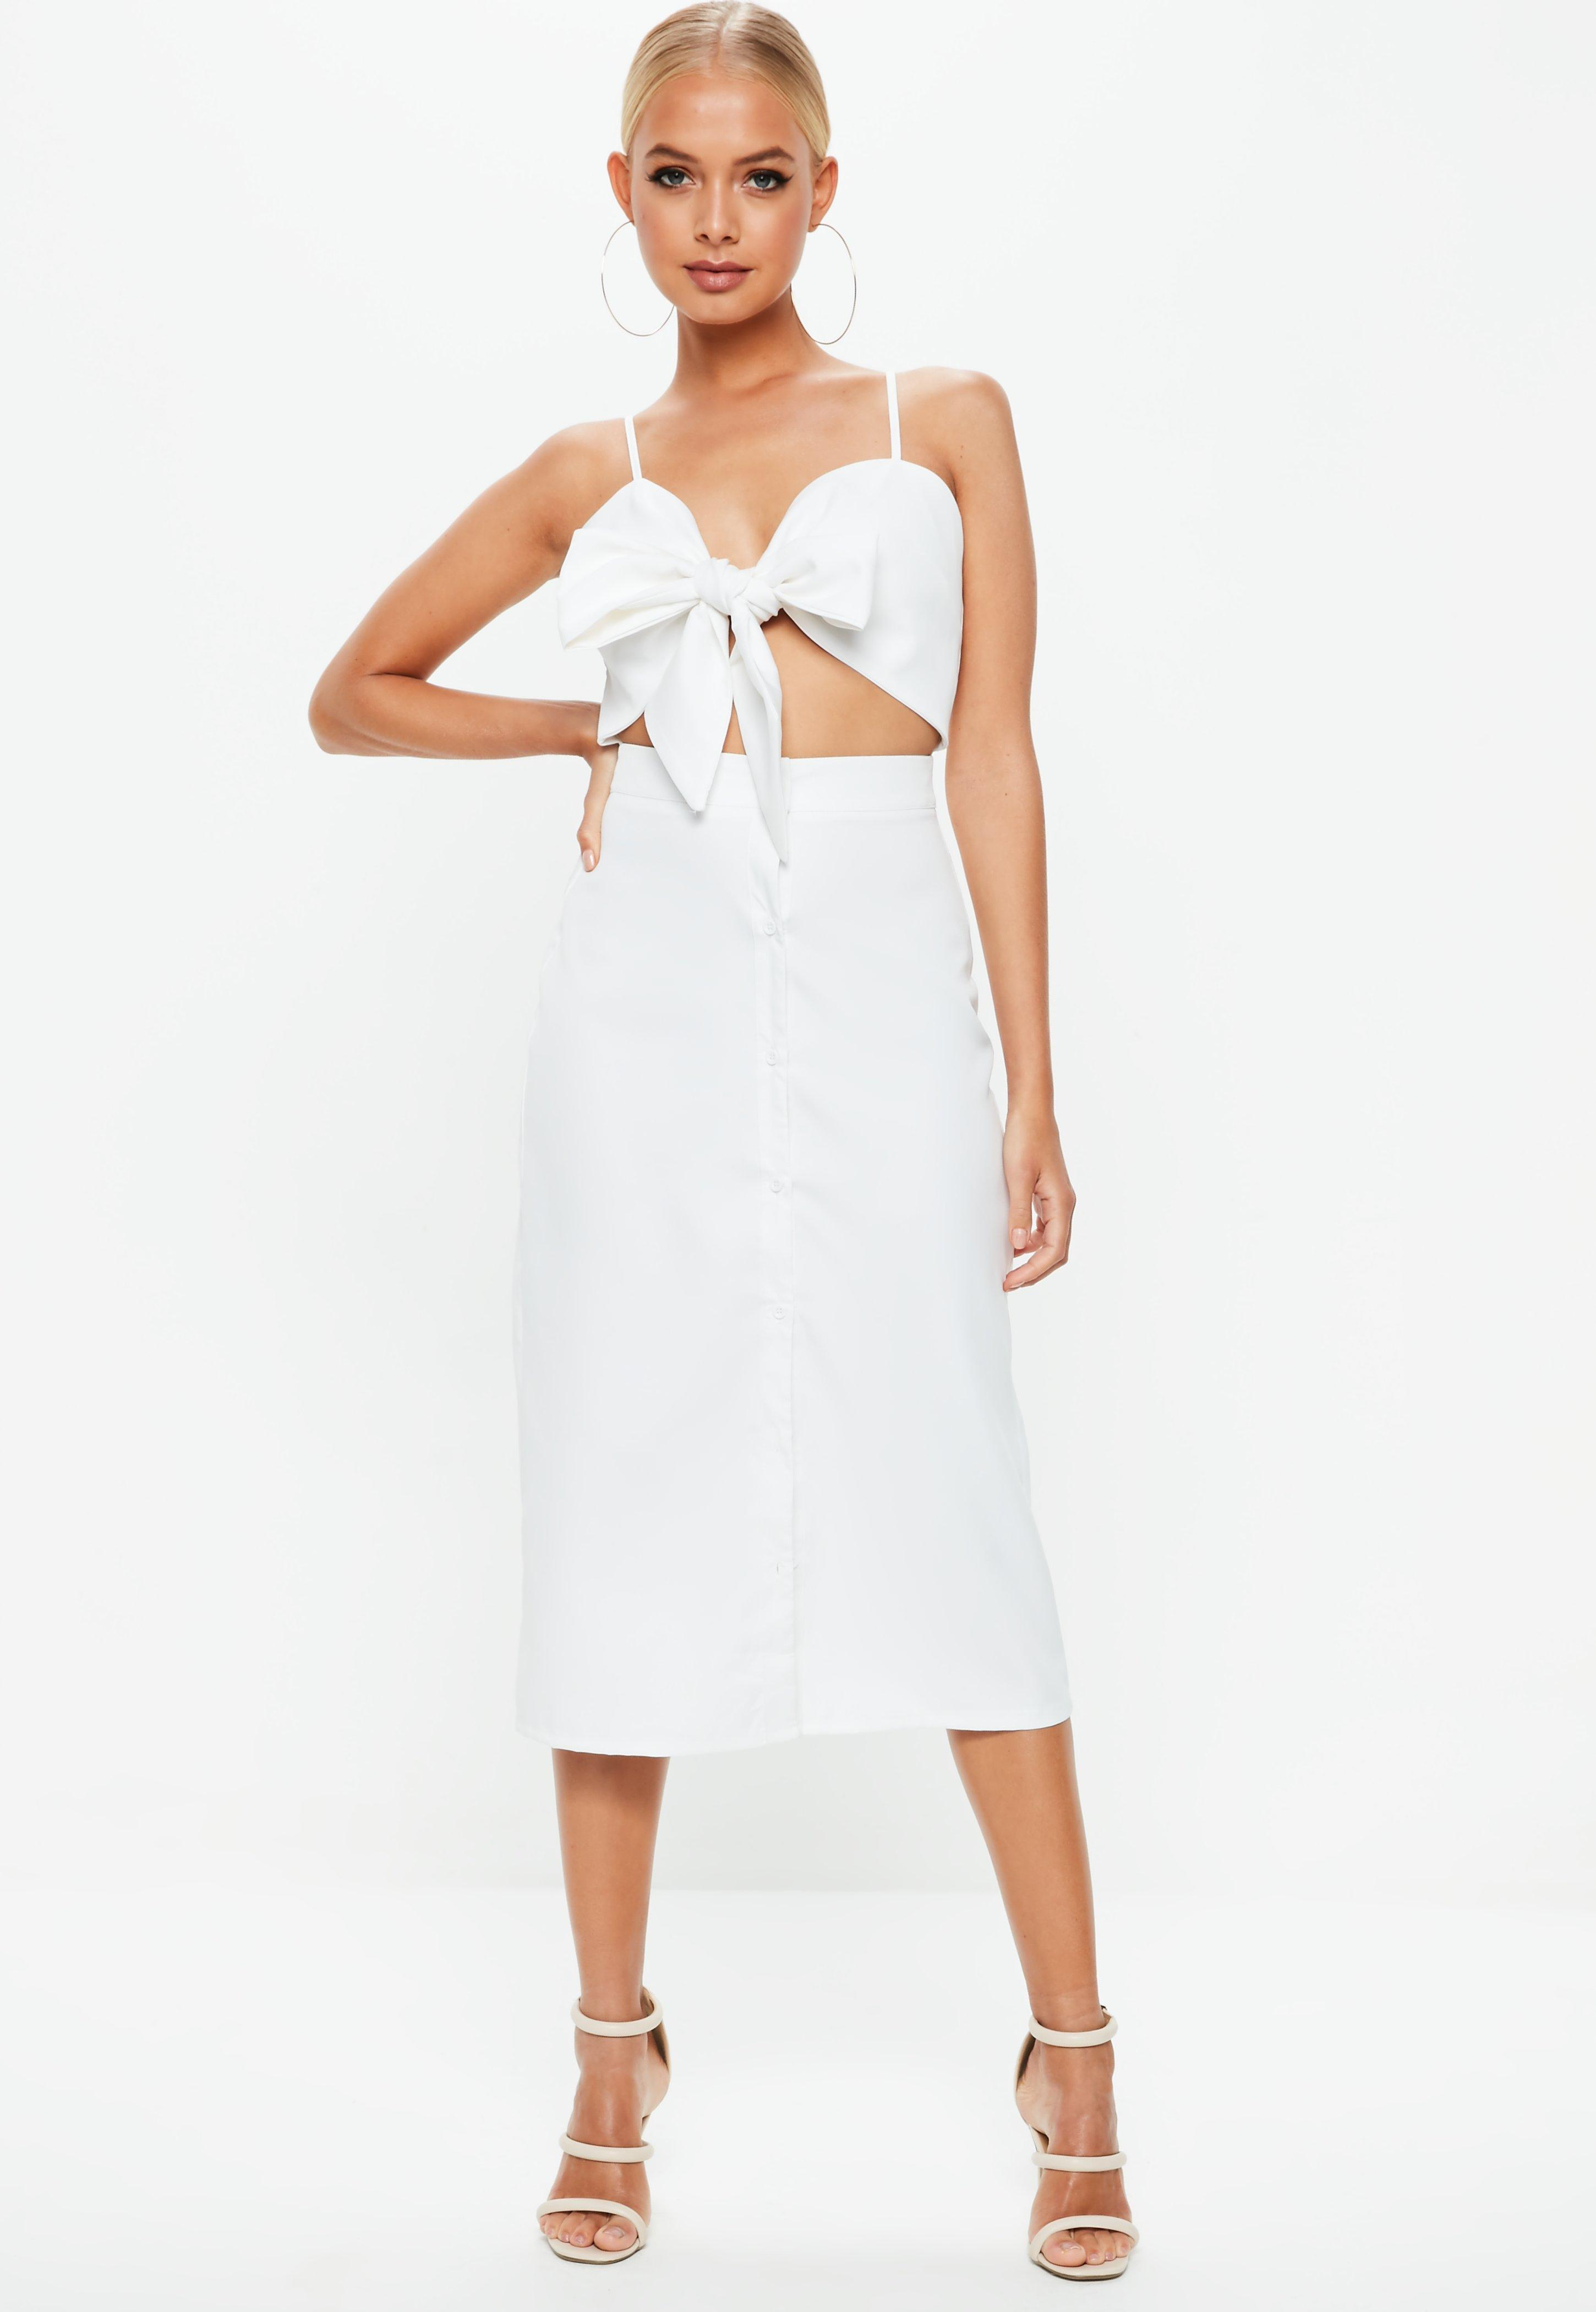 7a012b1639b Lyst - Missguided White Tie Front Button Down Strappy Midi Dress in ...